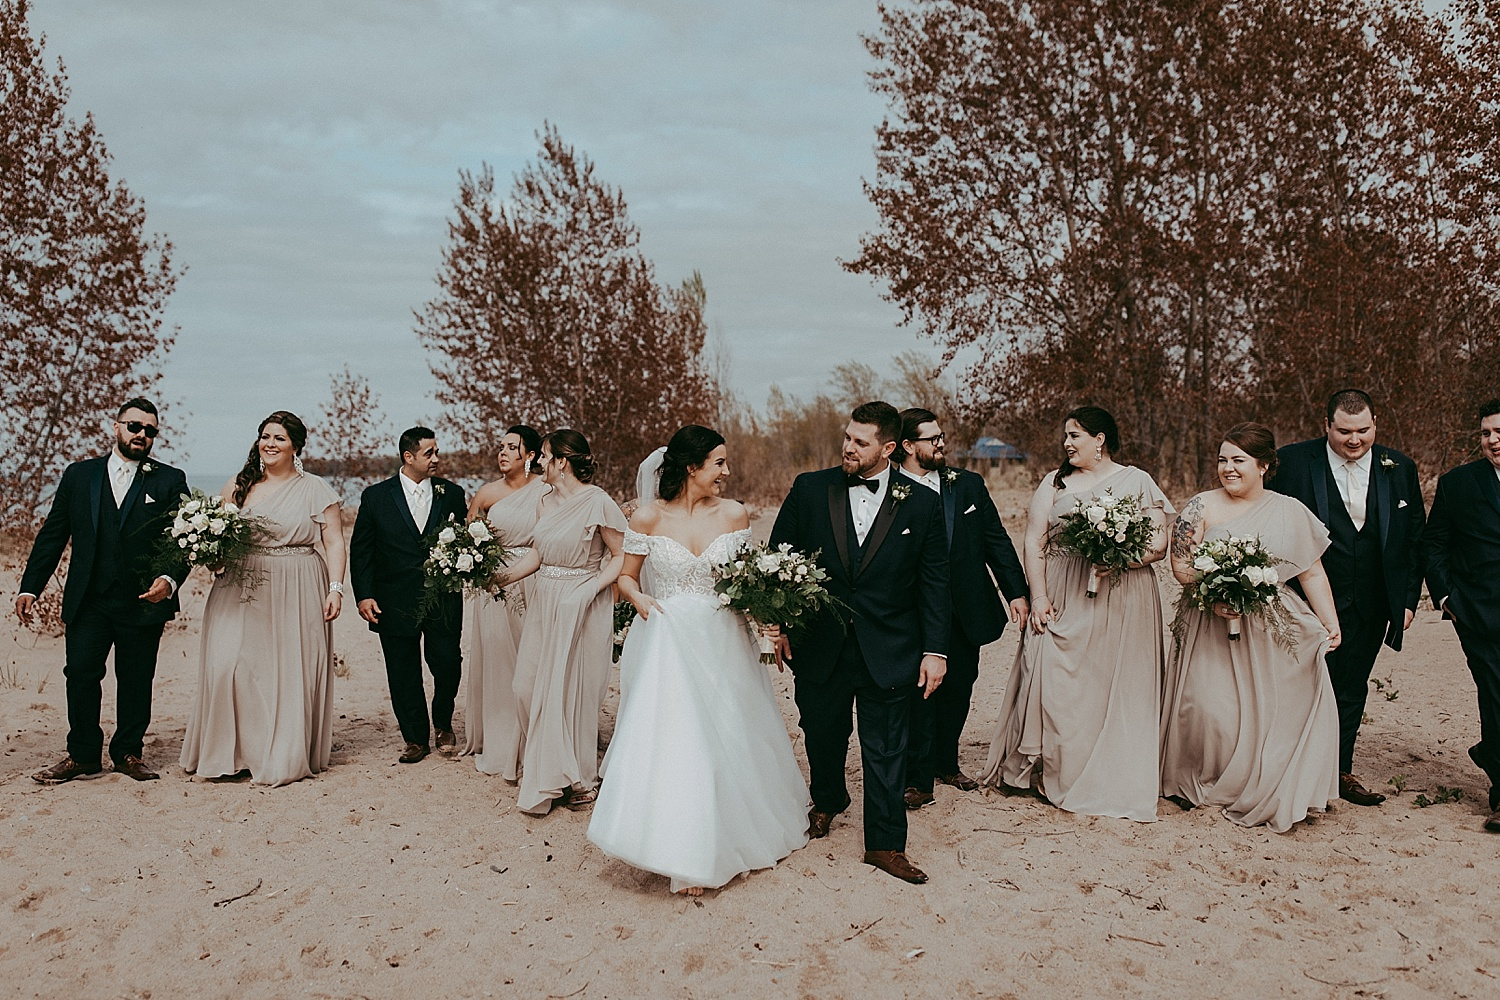 wedding party walking on the beach, wedding photography